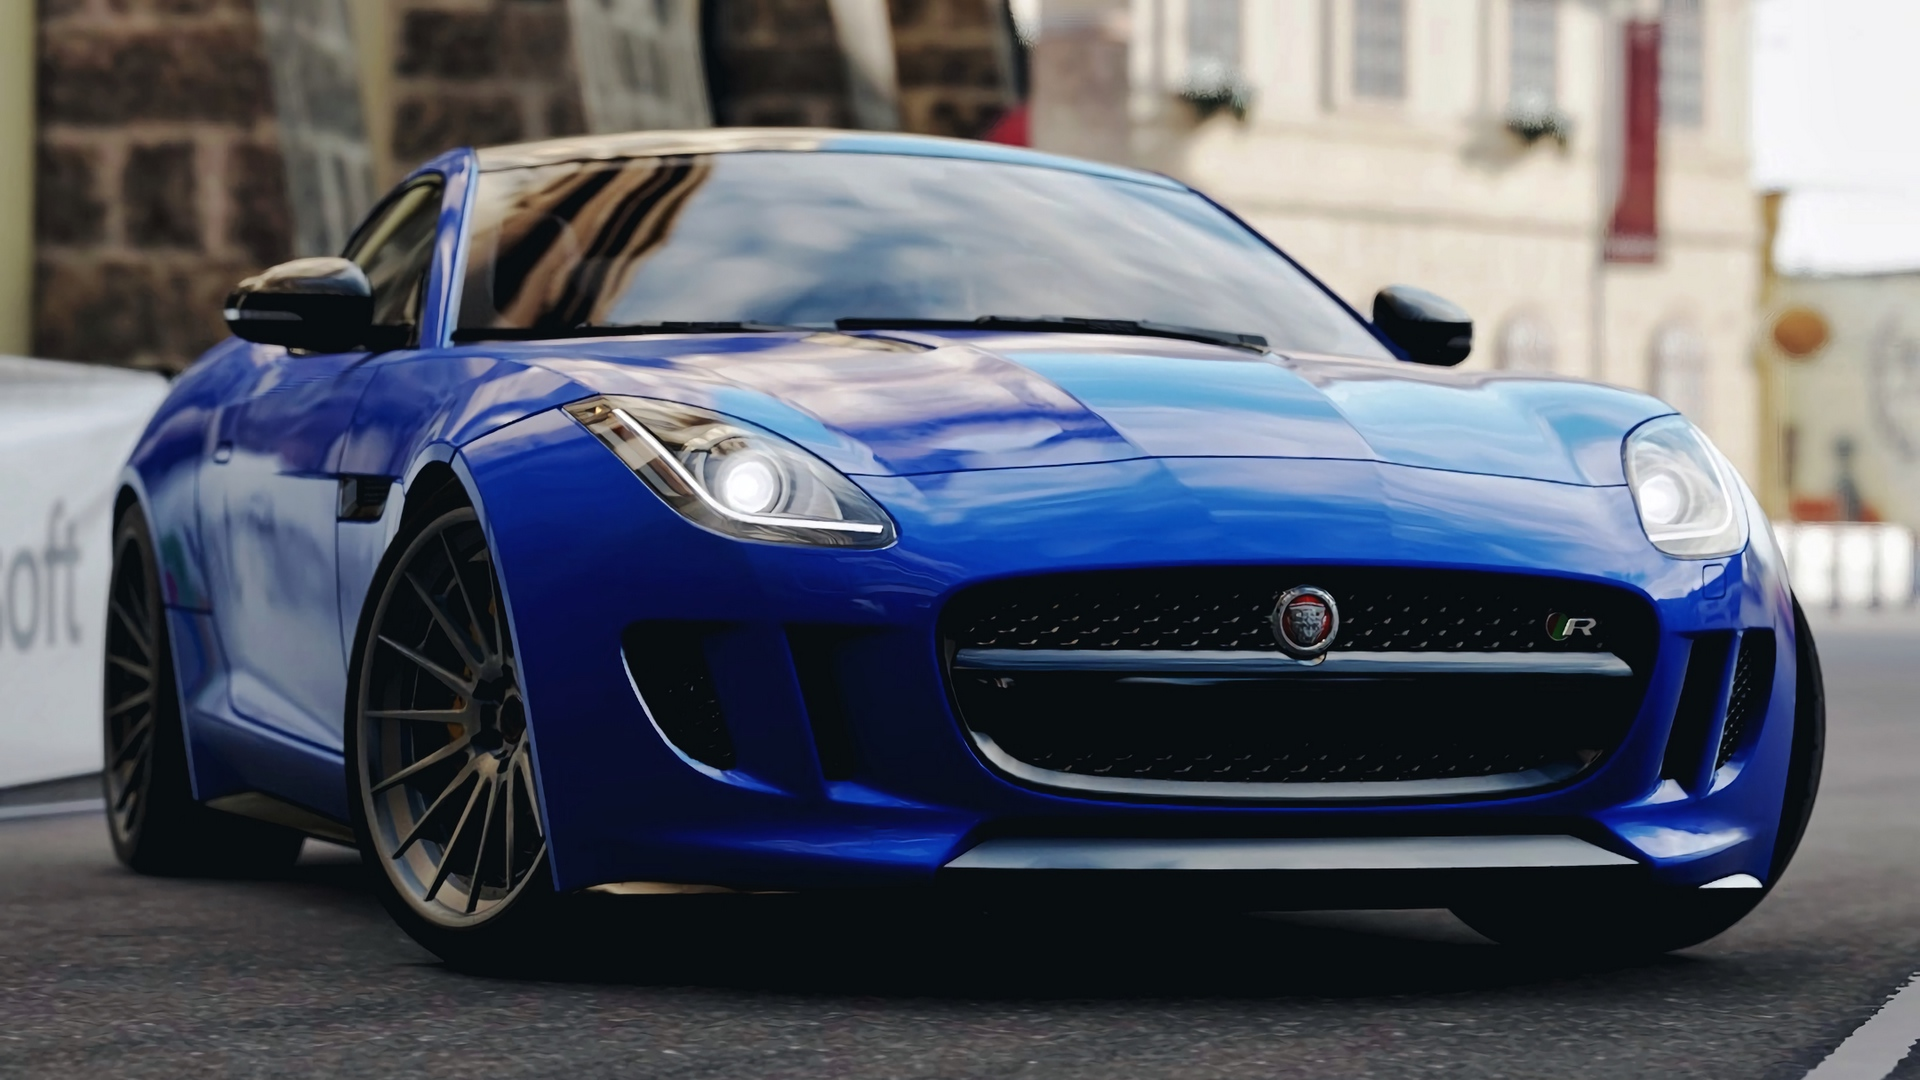 Jaguar Car Jaguar F Type Sports Car Blue Cars Car Wallpaper Resolution 1920x1080 Id 167 Wallha Com